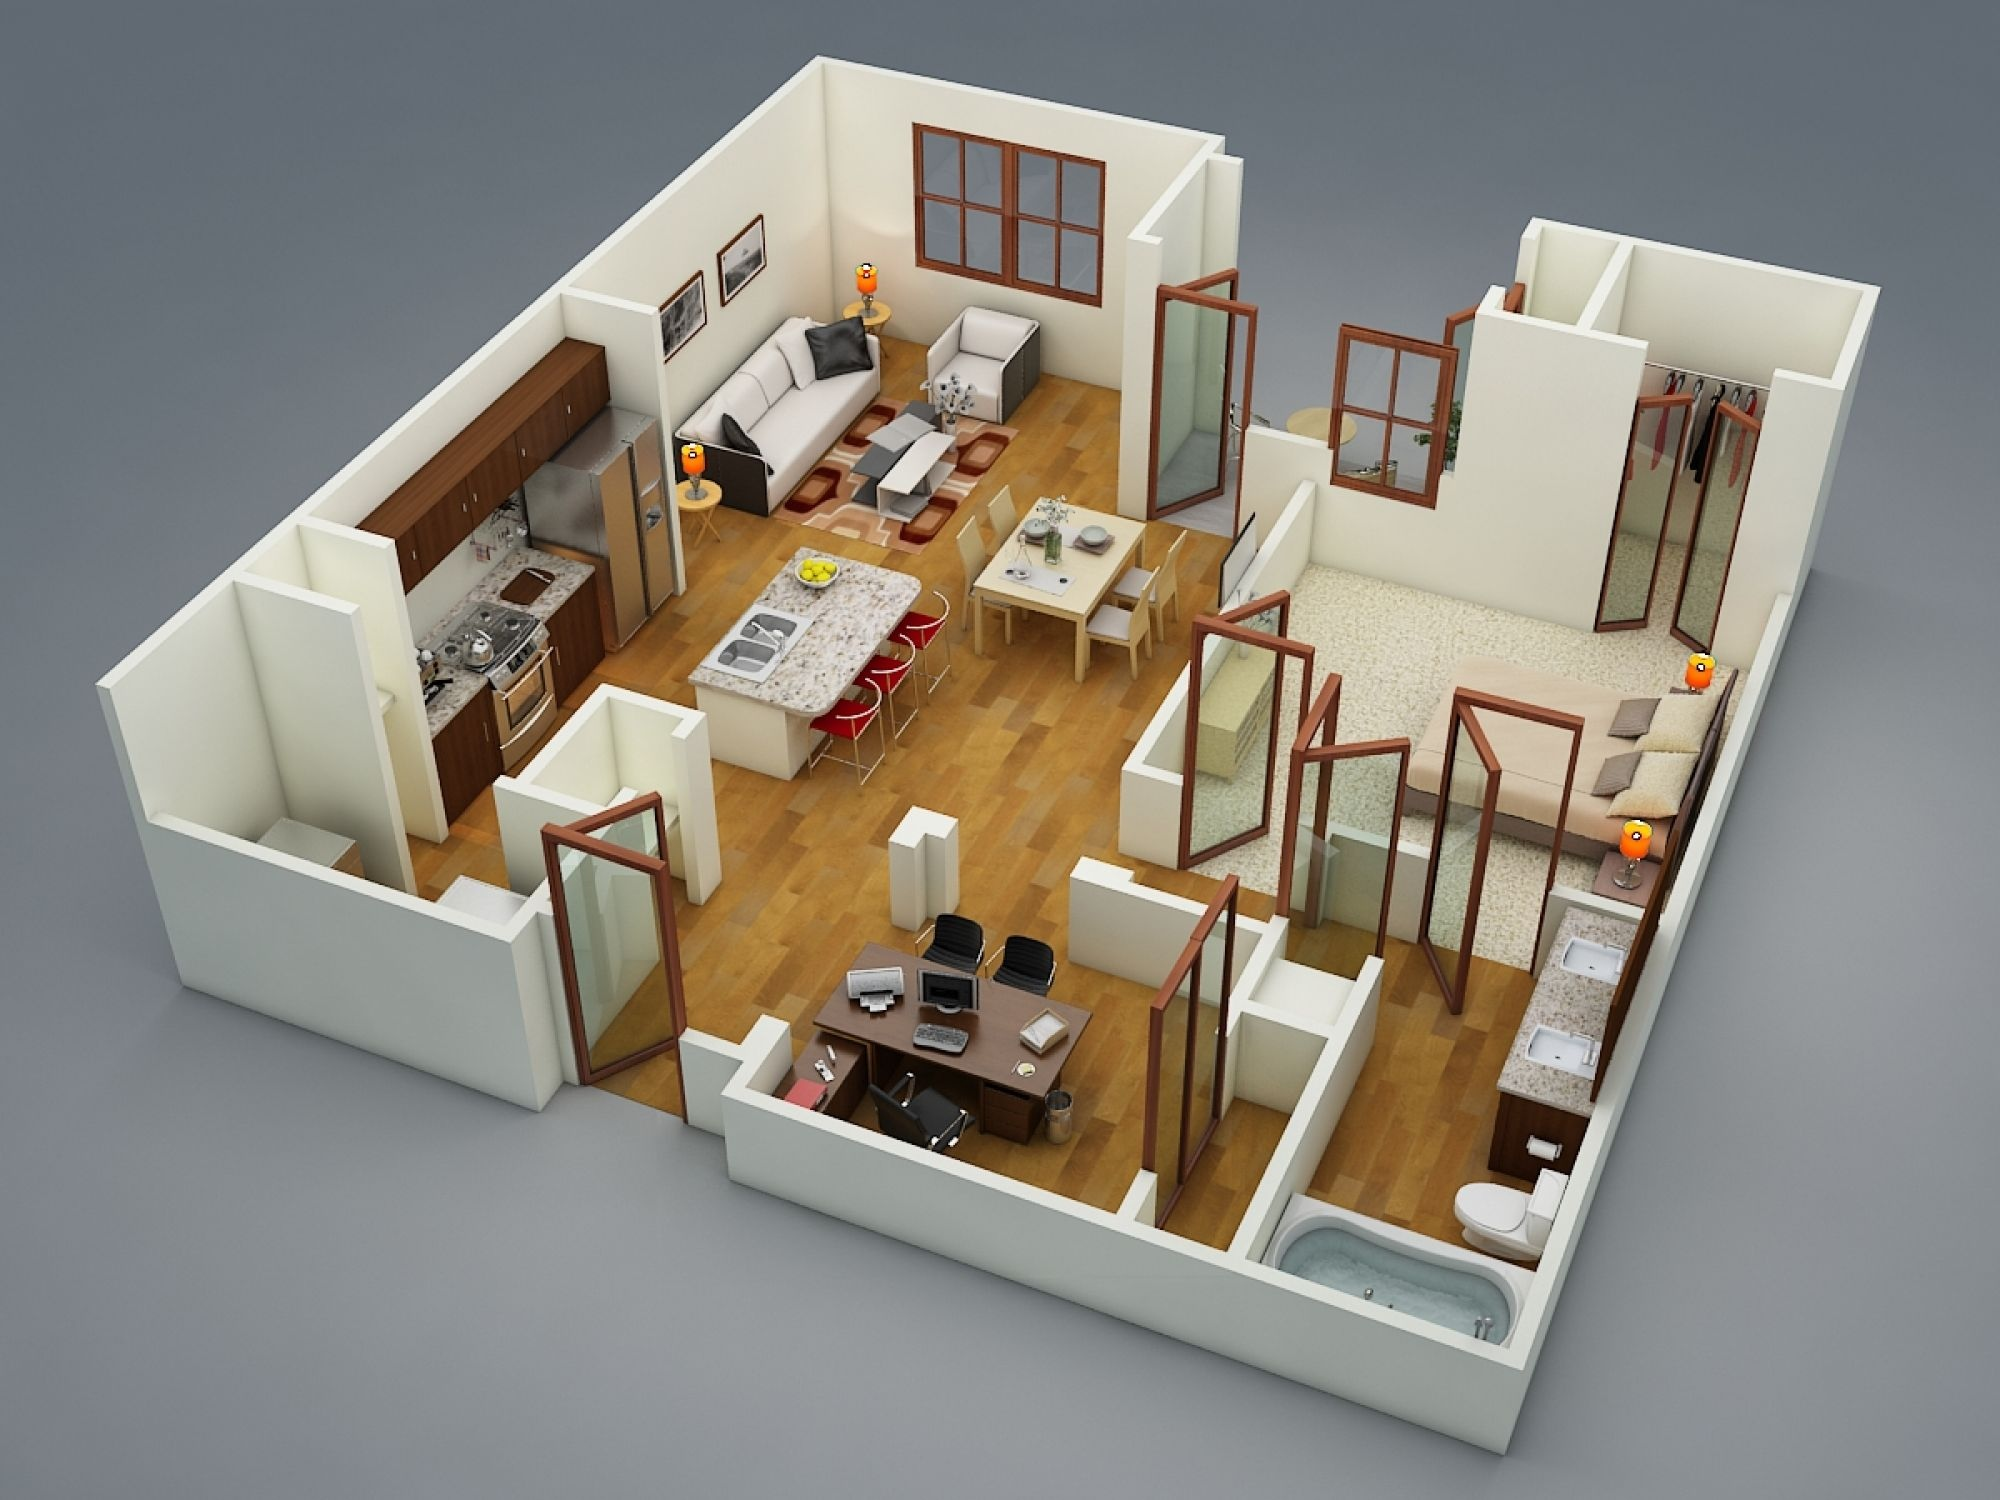 50 one 1 bedroom apartment house plans architecture for One room apartment interior design